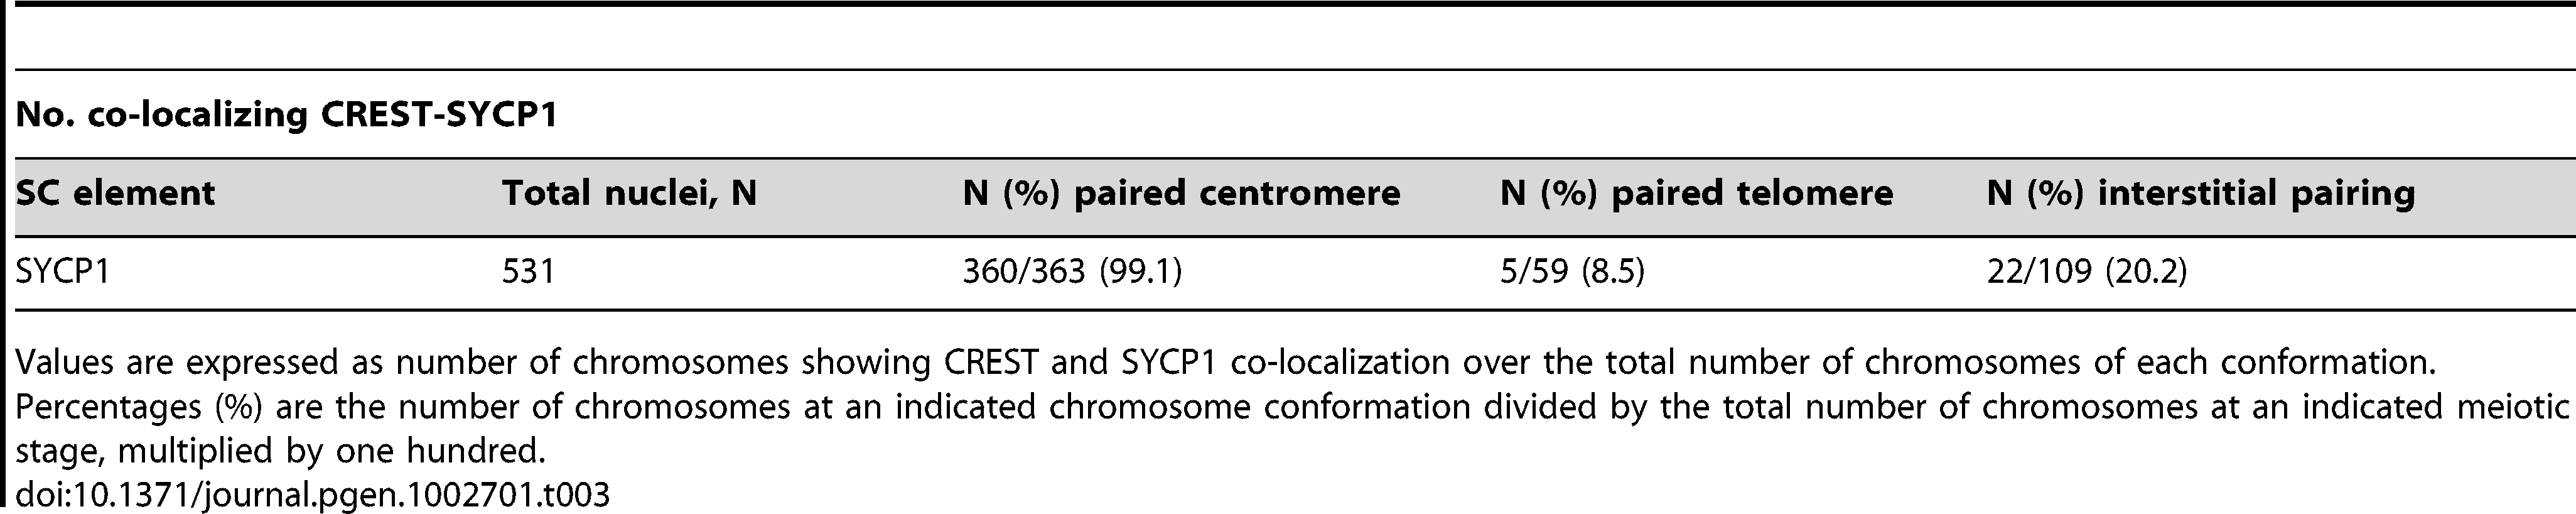 SYCP1 association with paired and unpaired centromeres in diplotene.